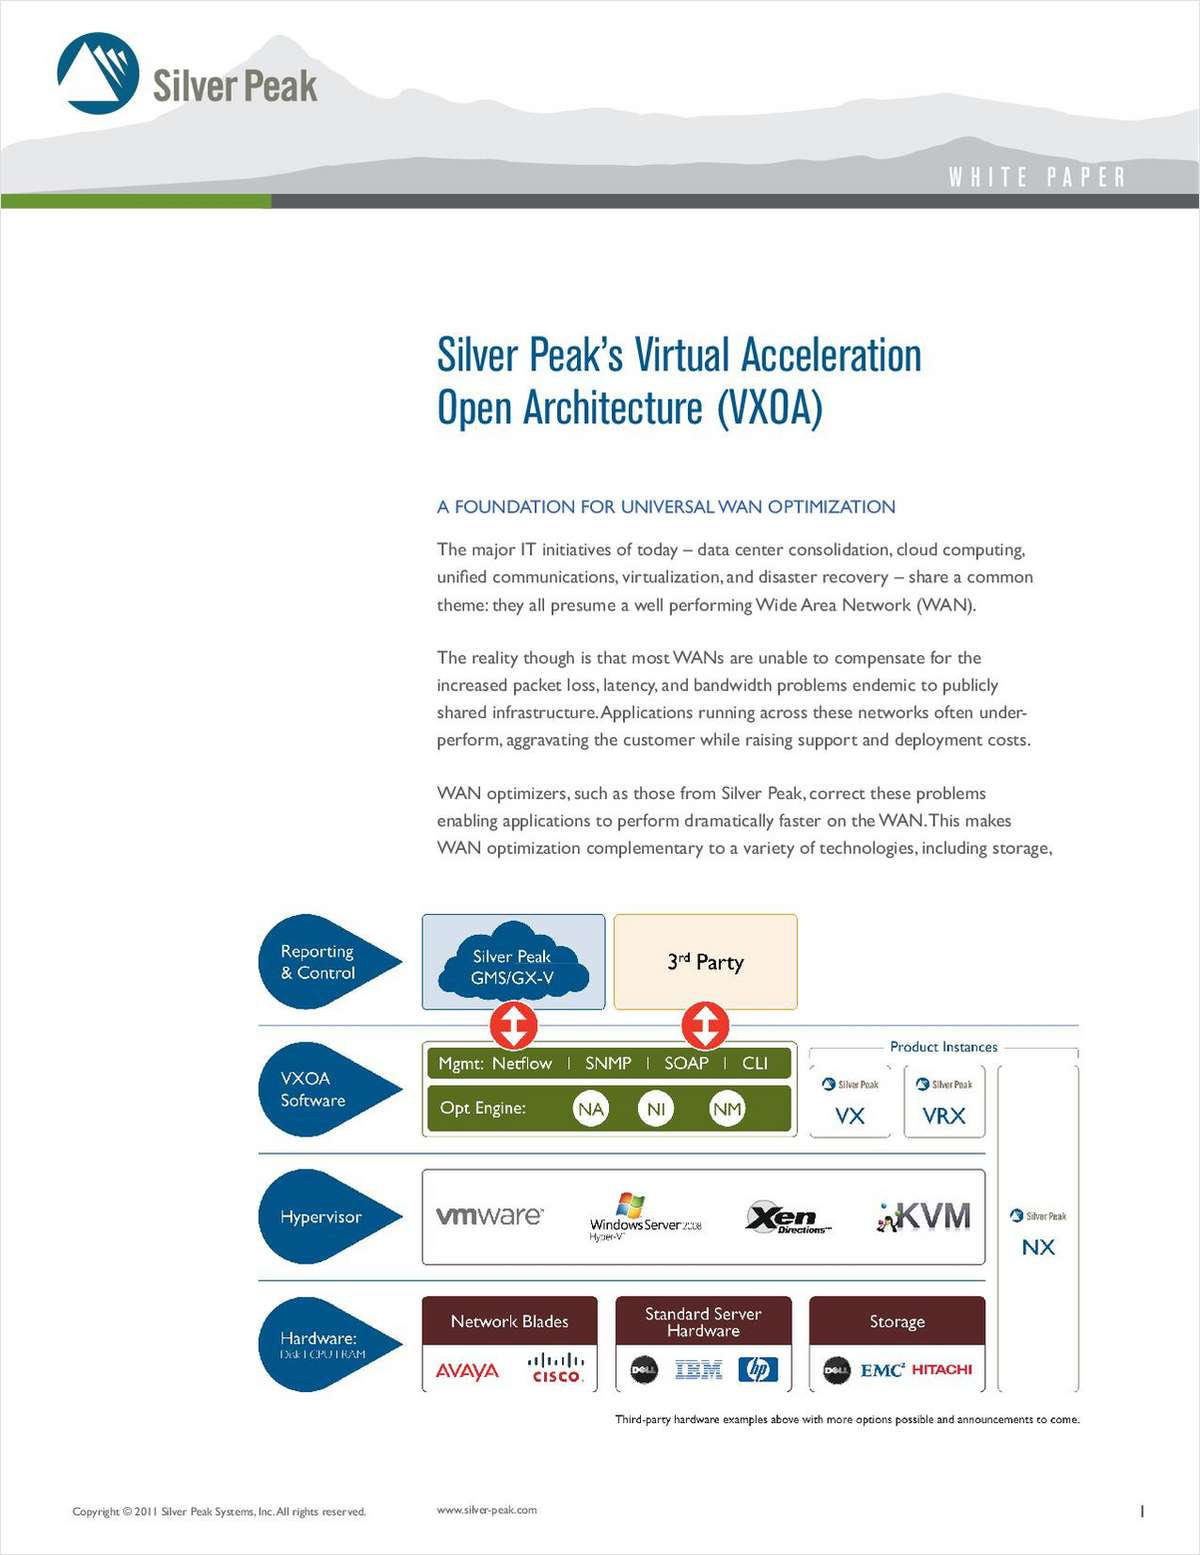 Silver Peak's VXOA: A Foundation for Universal WAN Optimization